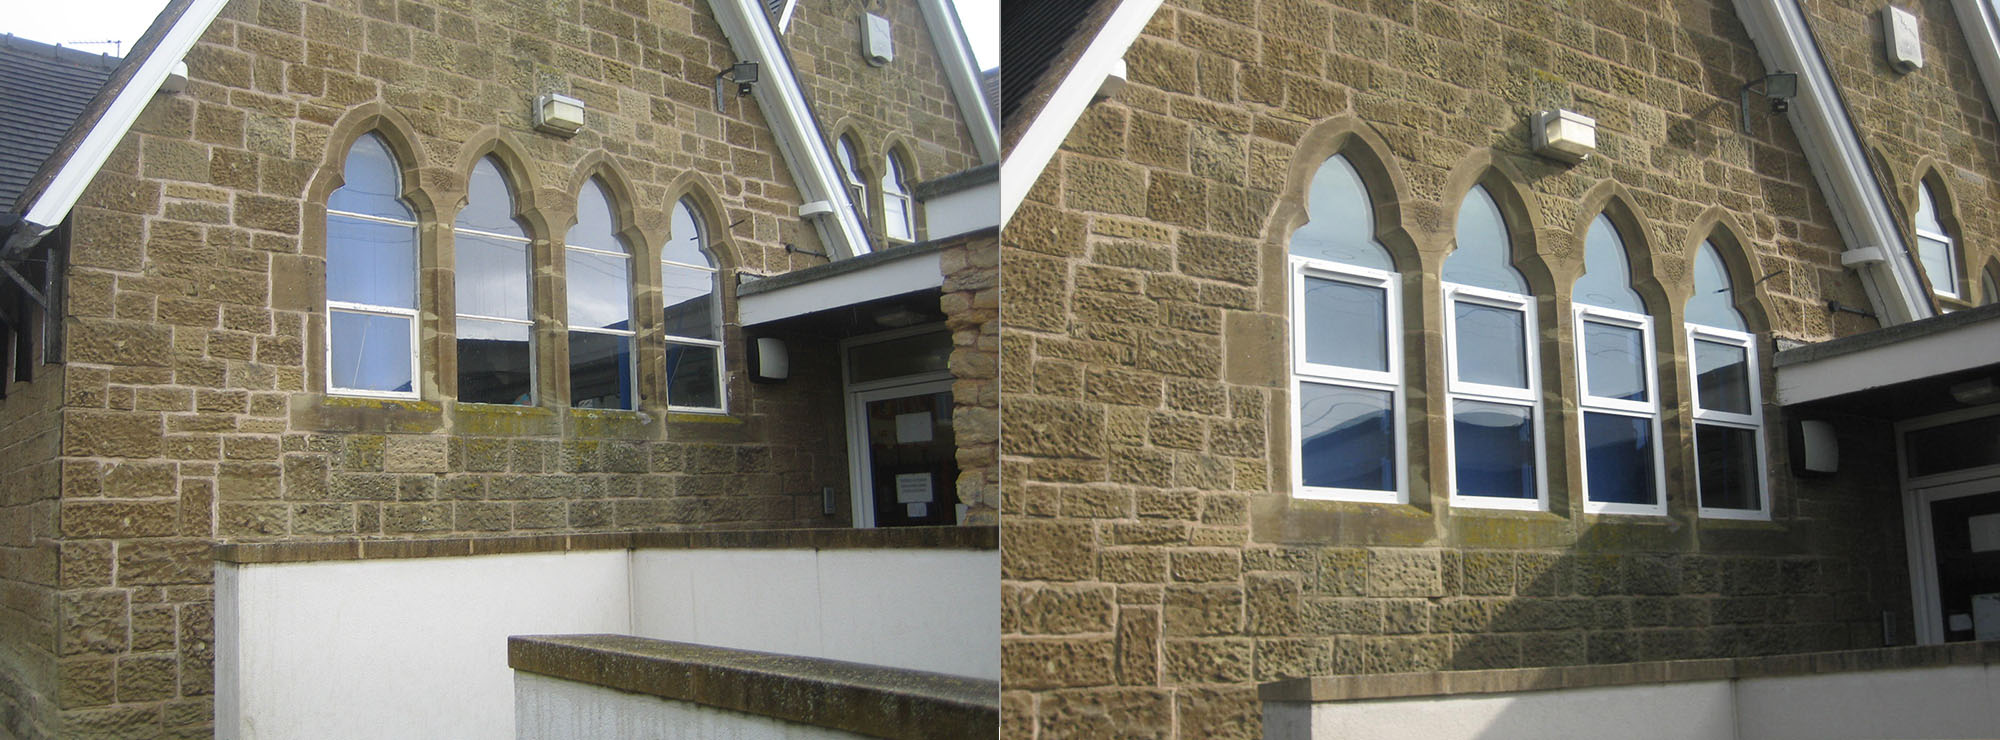 <strong>Primary School in Worcestershire.</strong>Replacement of steel windows in stone surrounds with white commercial aluminium inserts.